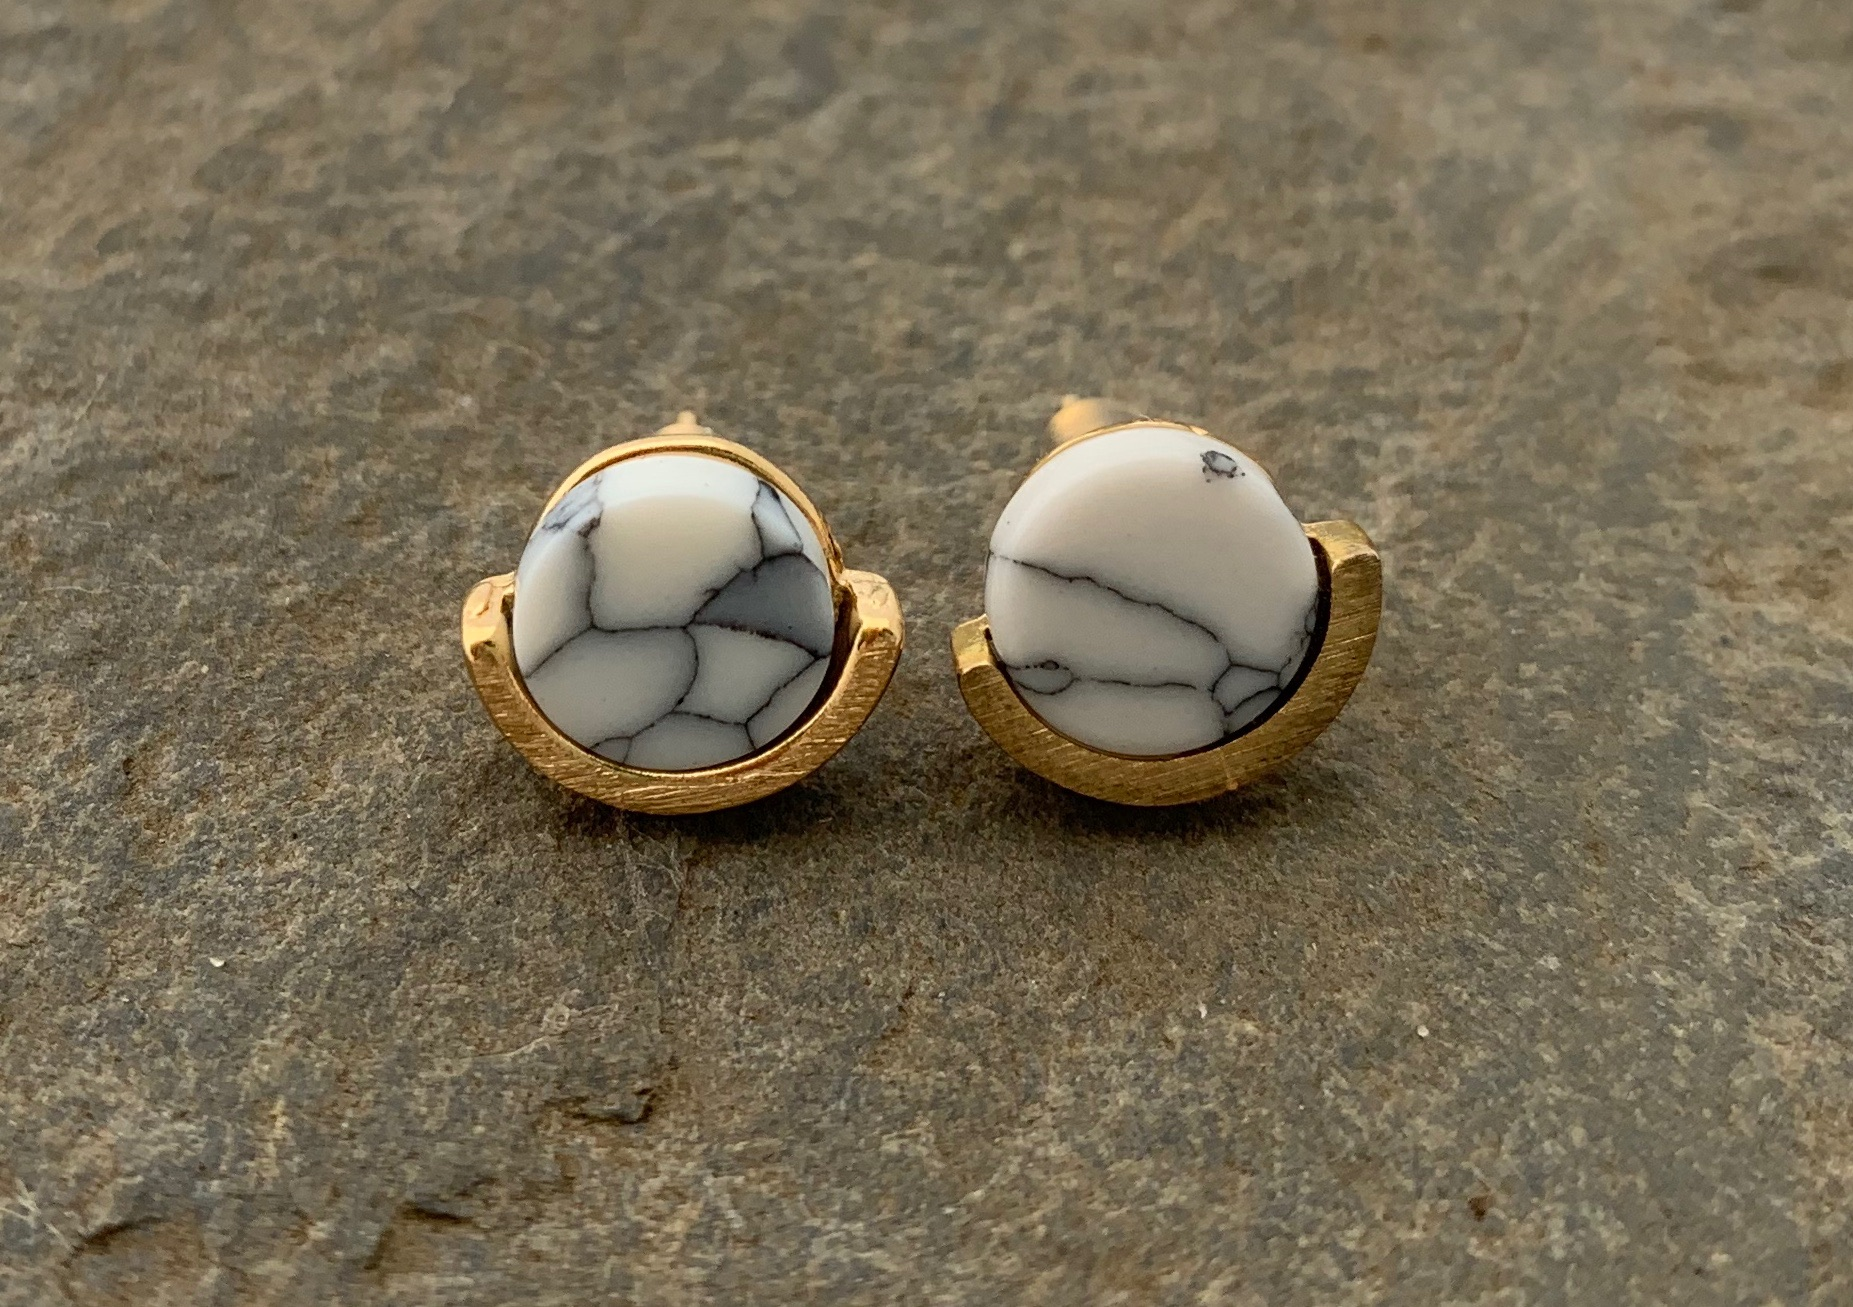 Stud earrings gold plated with grey and white marble stone